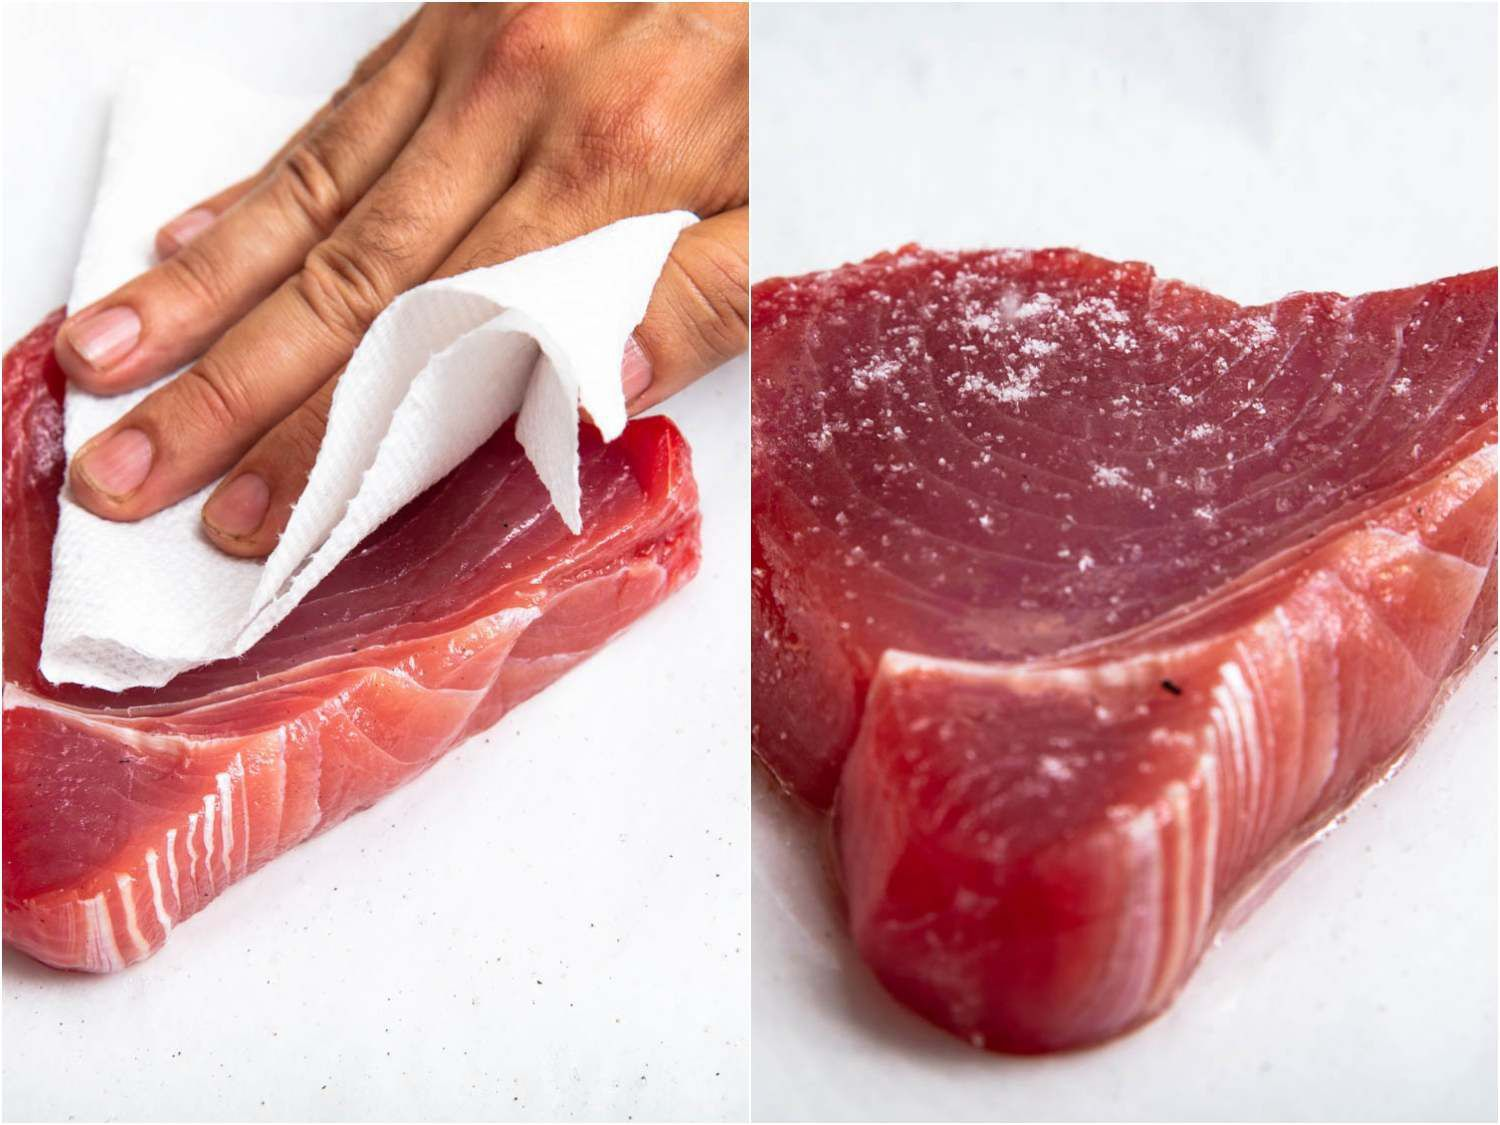 Before grilling tuna steaks should be dried well with paper towels as shown in the photo at left; then it should be lightly rubbed with oil and seasoned with salt (photo at right)